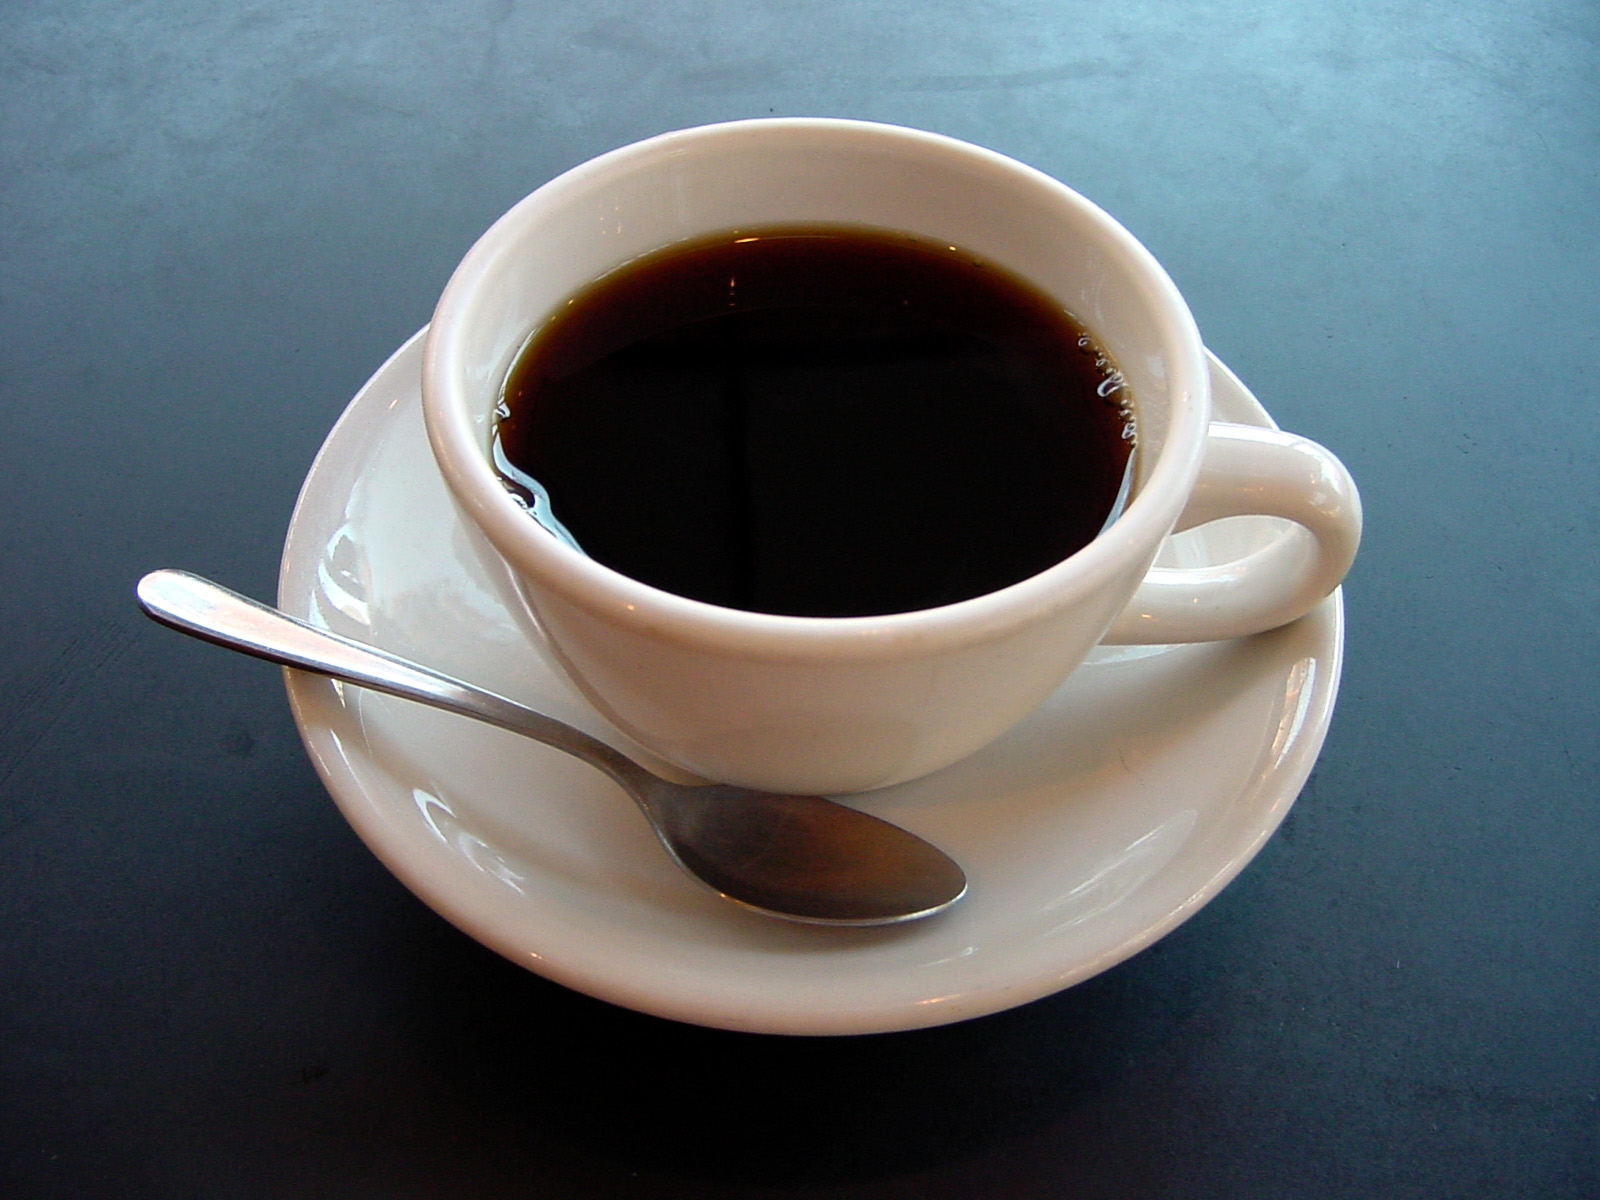 https://upload.wikimedia.org/wikipedia/commons/4/45/A_small_cup_of_coffee.JPG